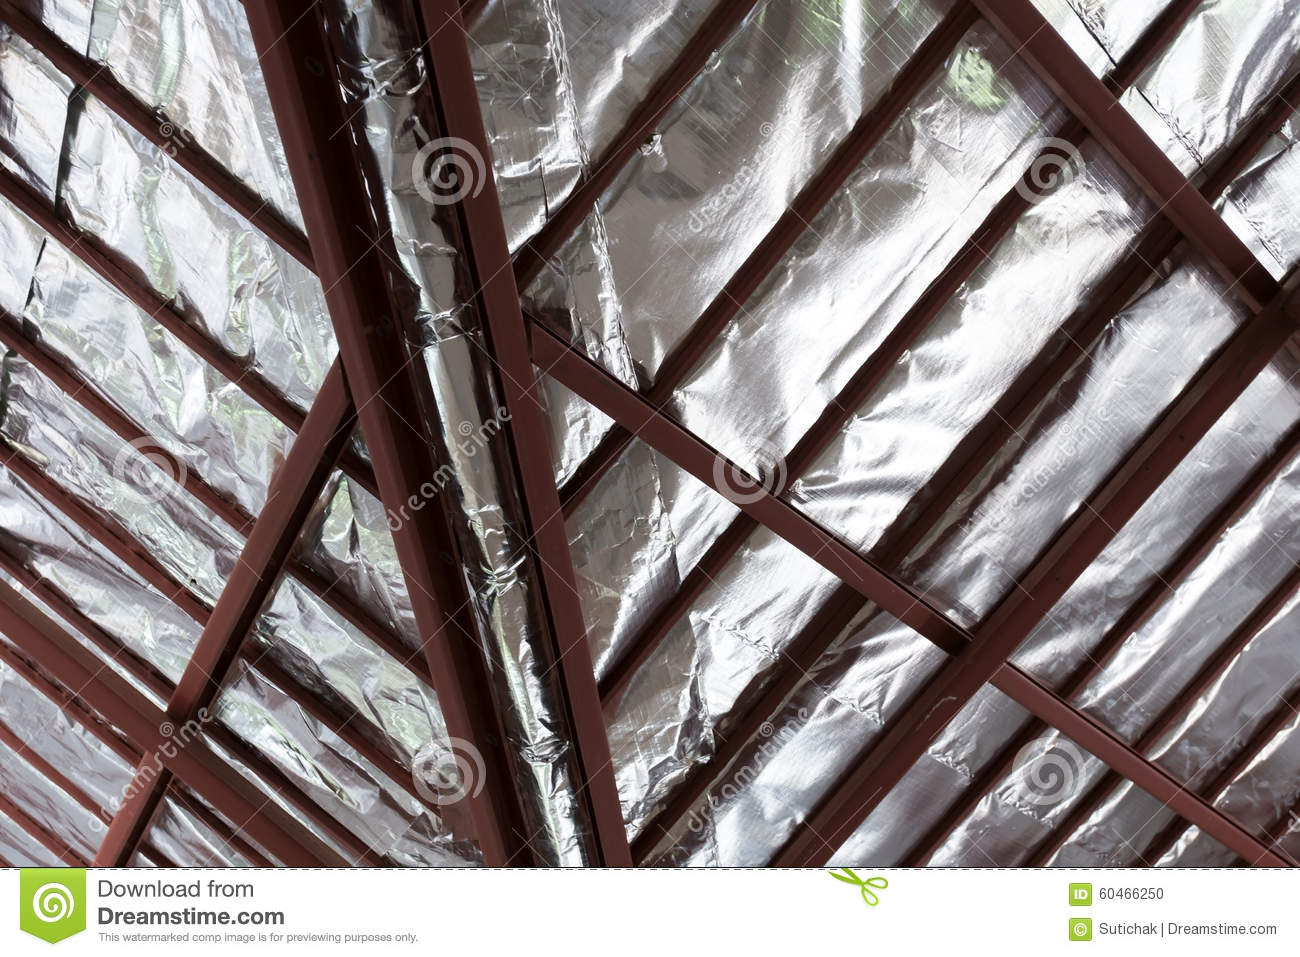 Ceiling thermal insulation hbm blog roof with steel beam and silver foil insulation heat on ceiling dailygadgetfo Images